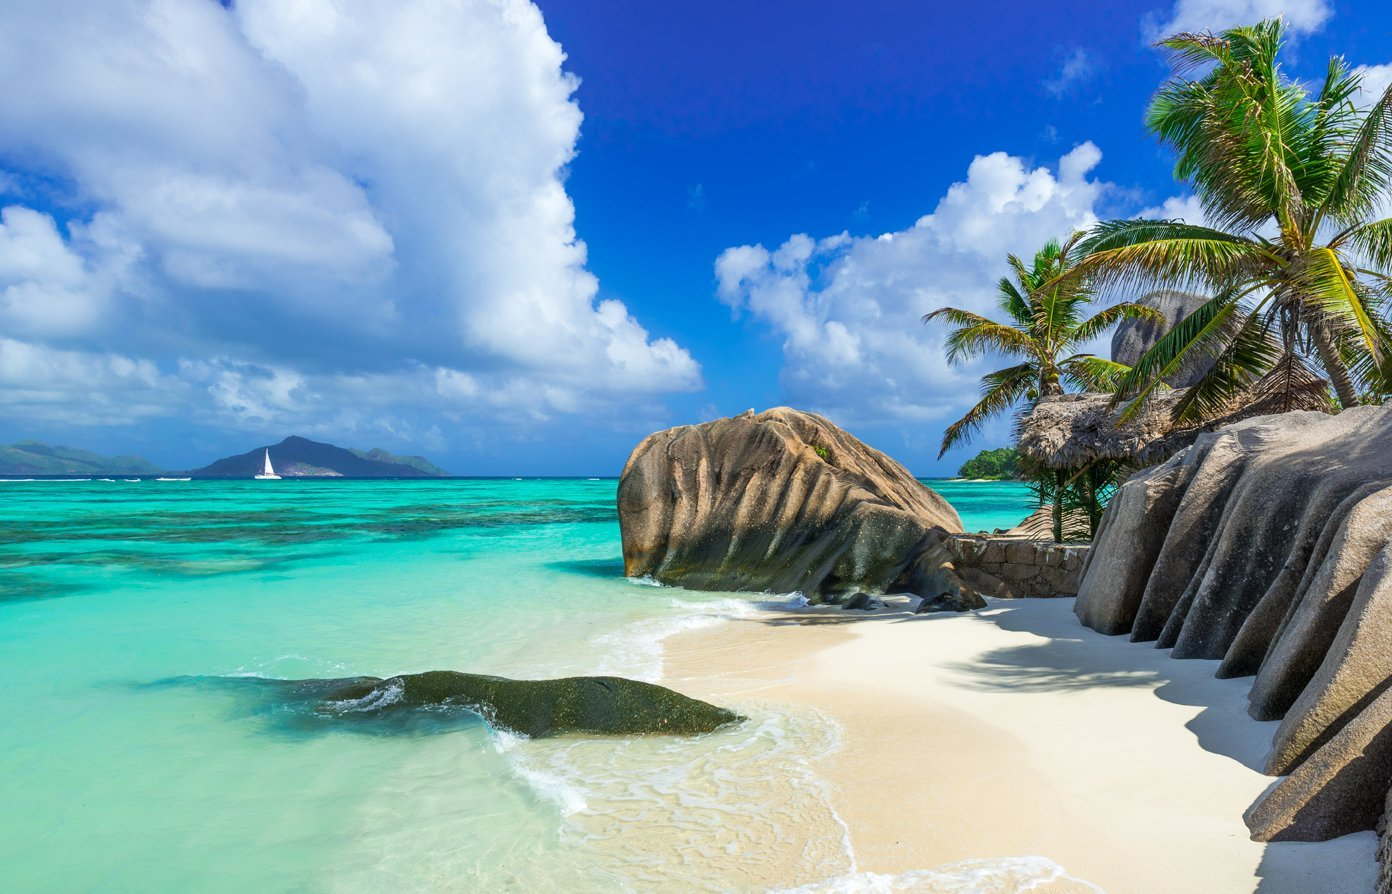 Seychelles beach with rocks and palm trees